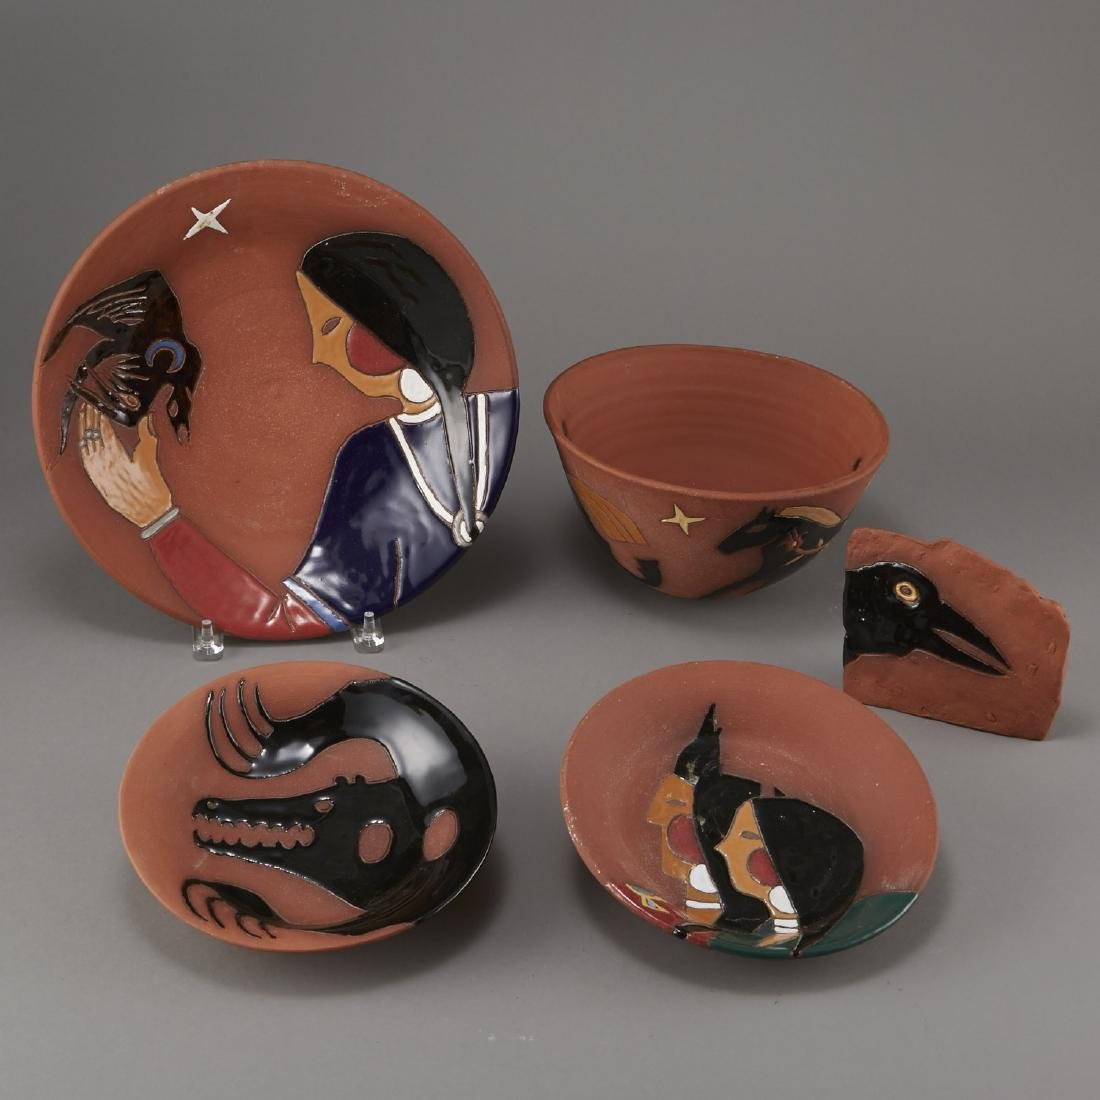 Group of 5 Glen LaFontaine Pottery pieces